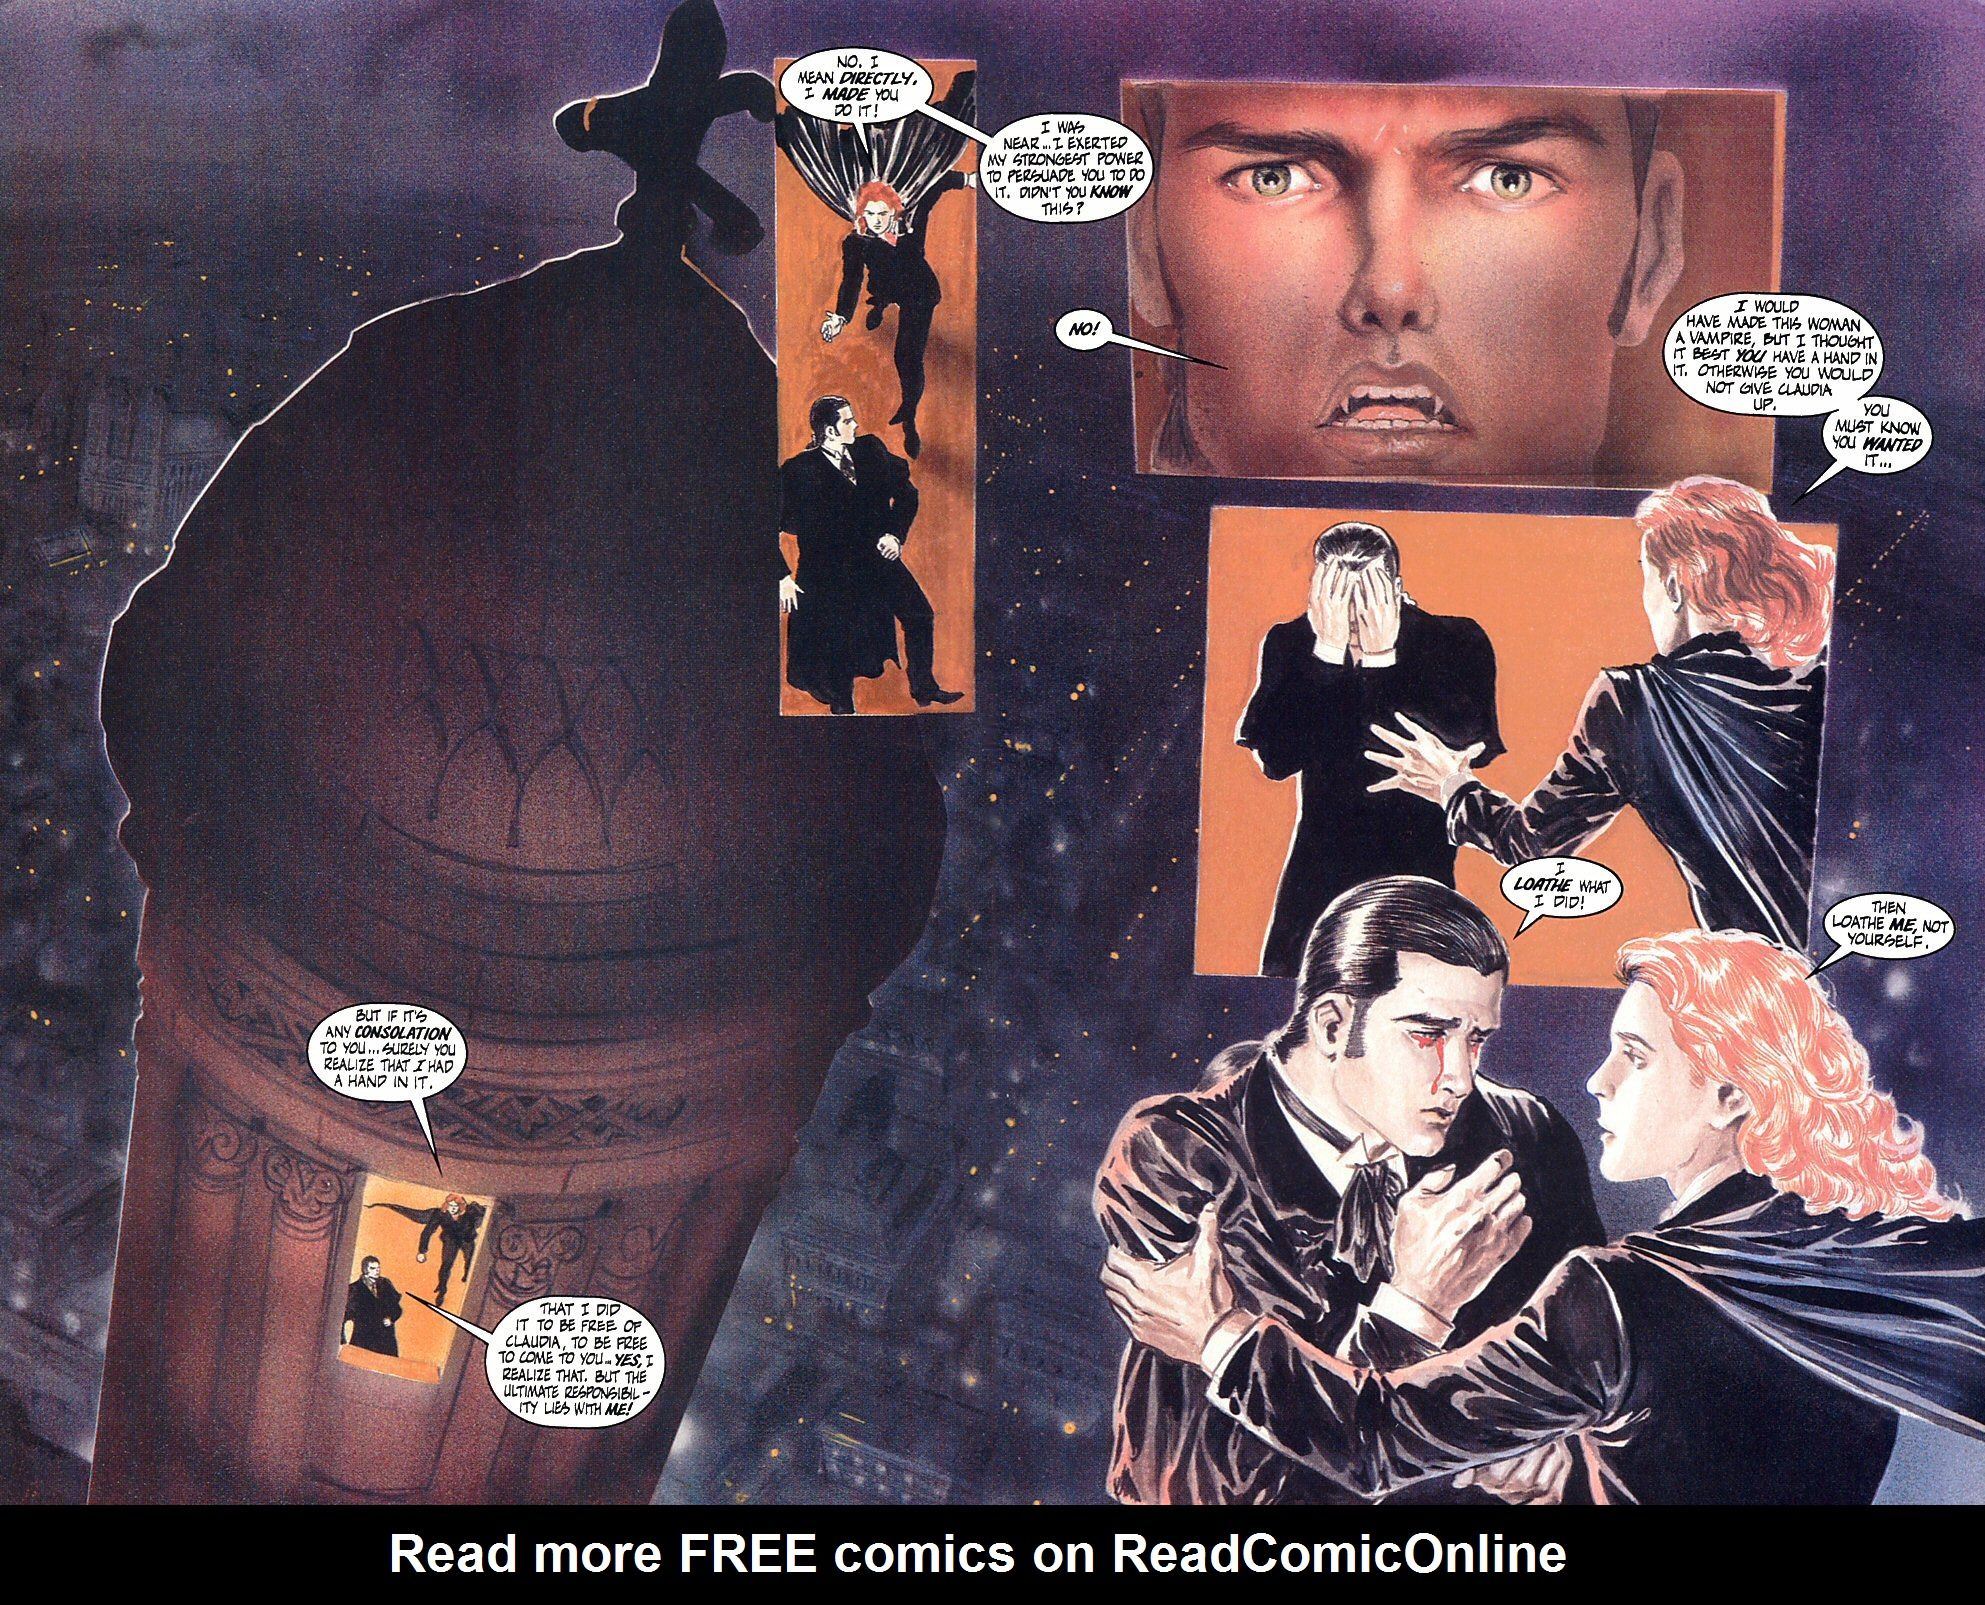 Read online Anne Rice's Interview with the Vampire comic -  Issue #10 - 18